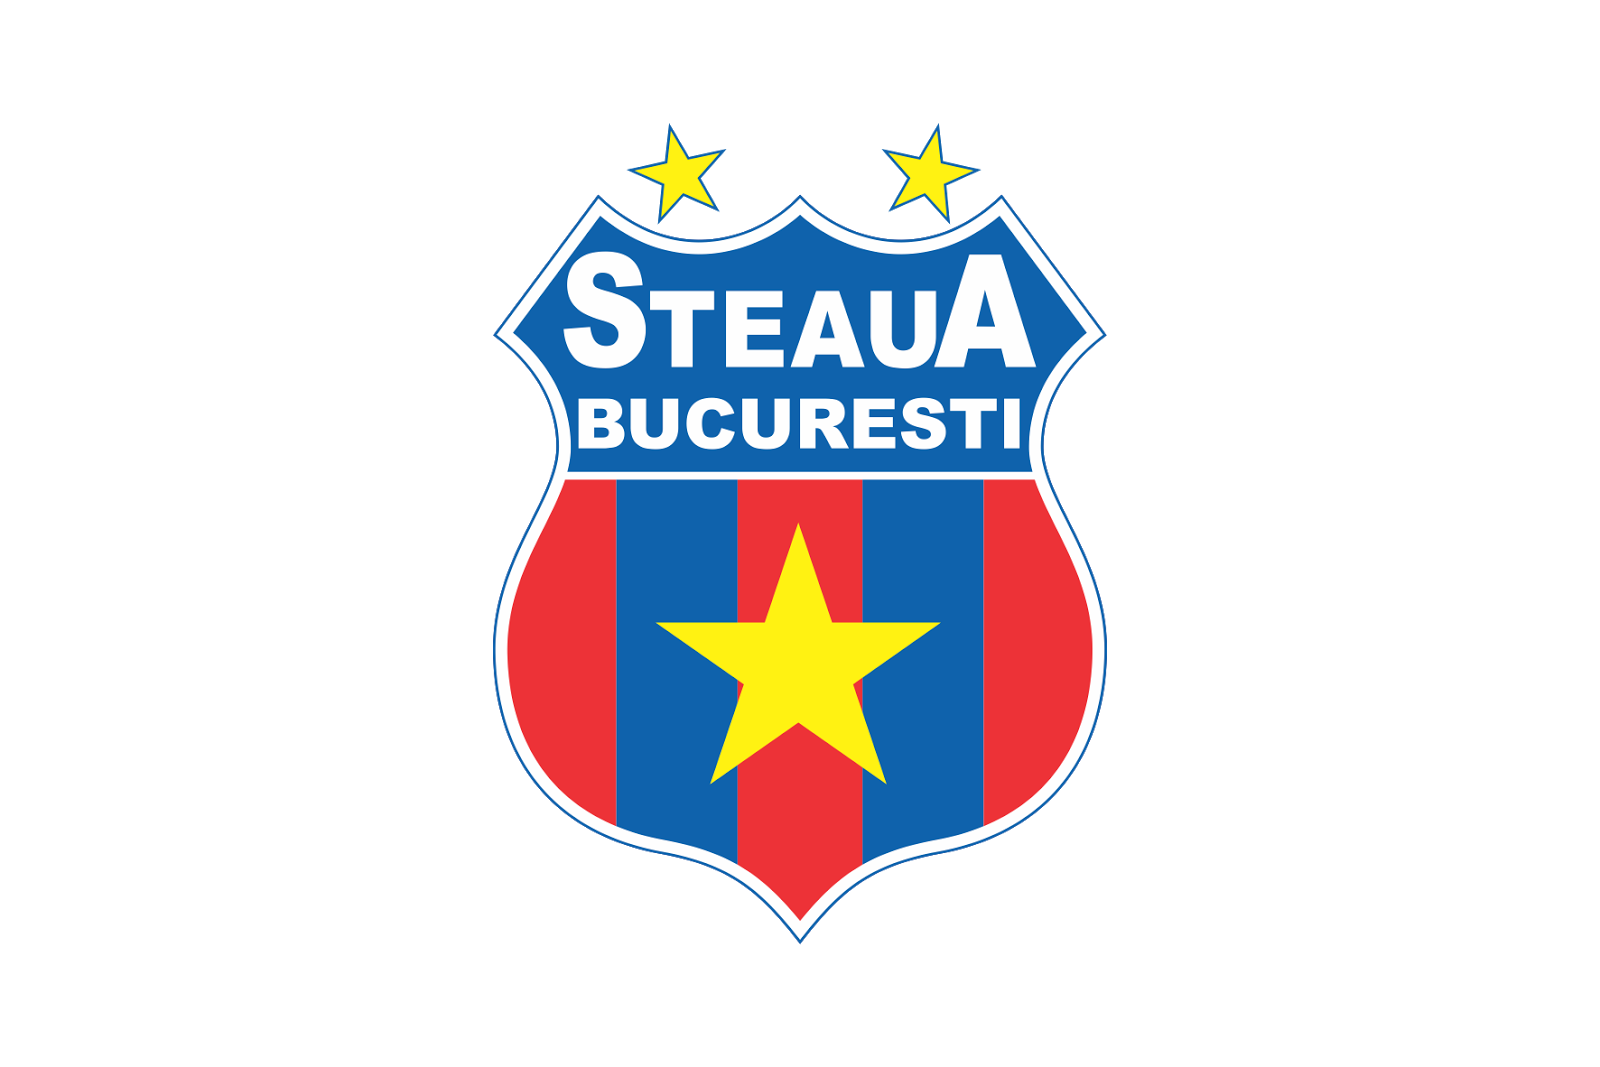 Steau Bukarest